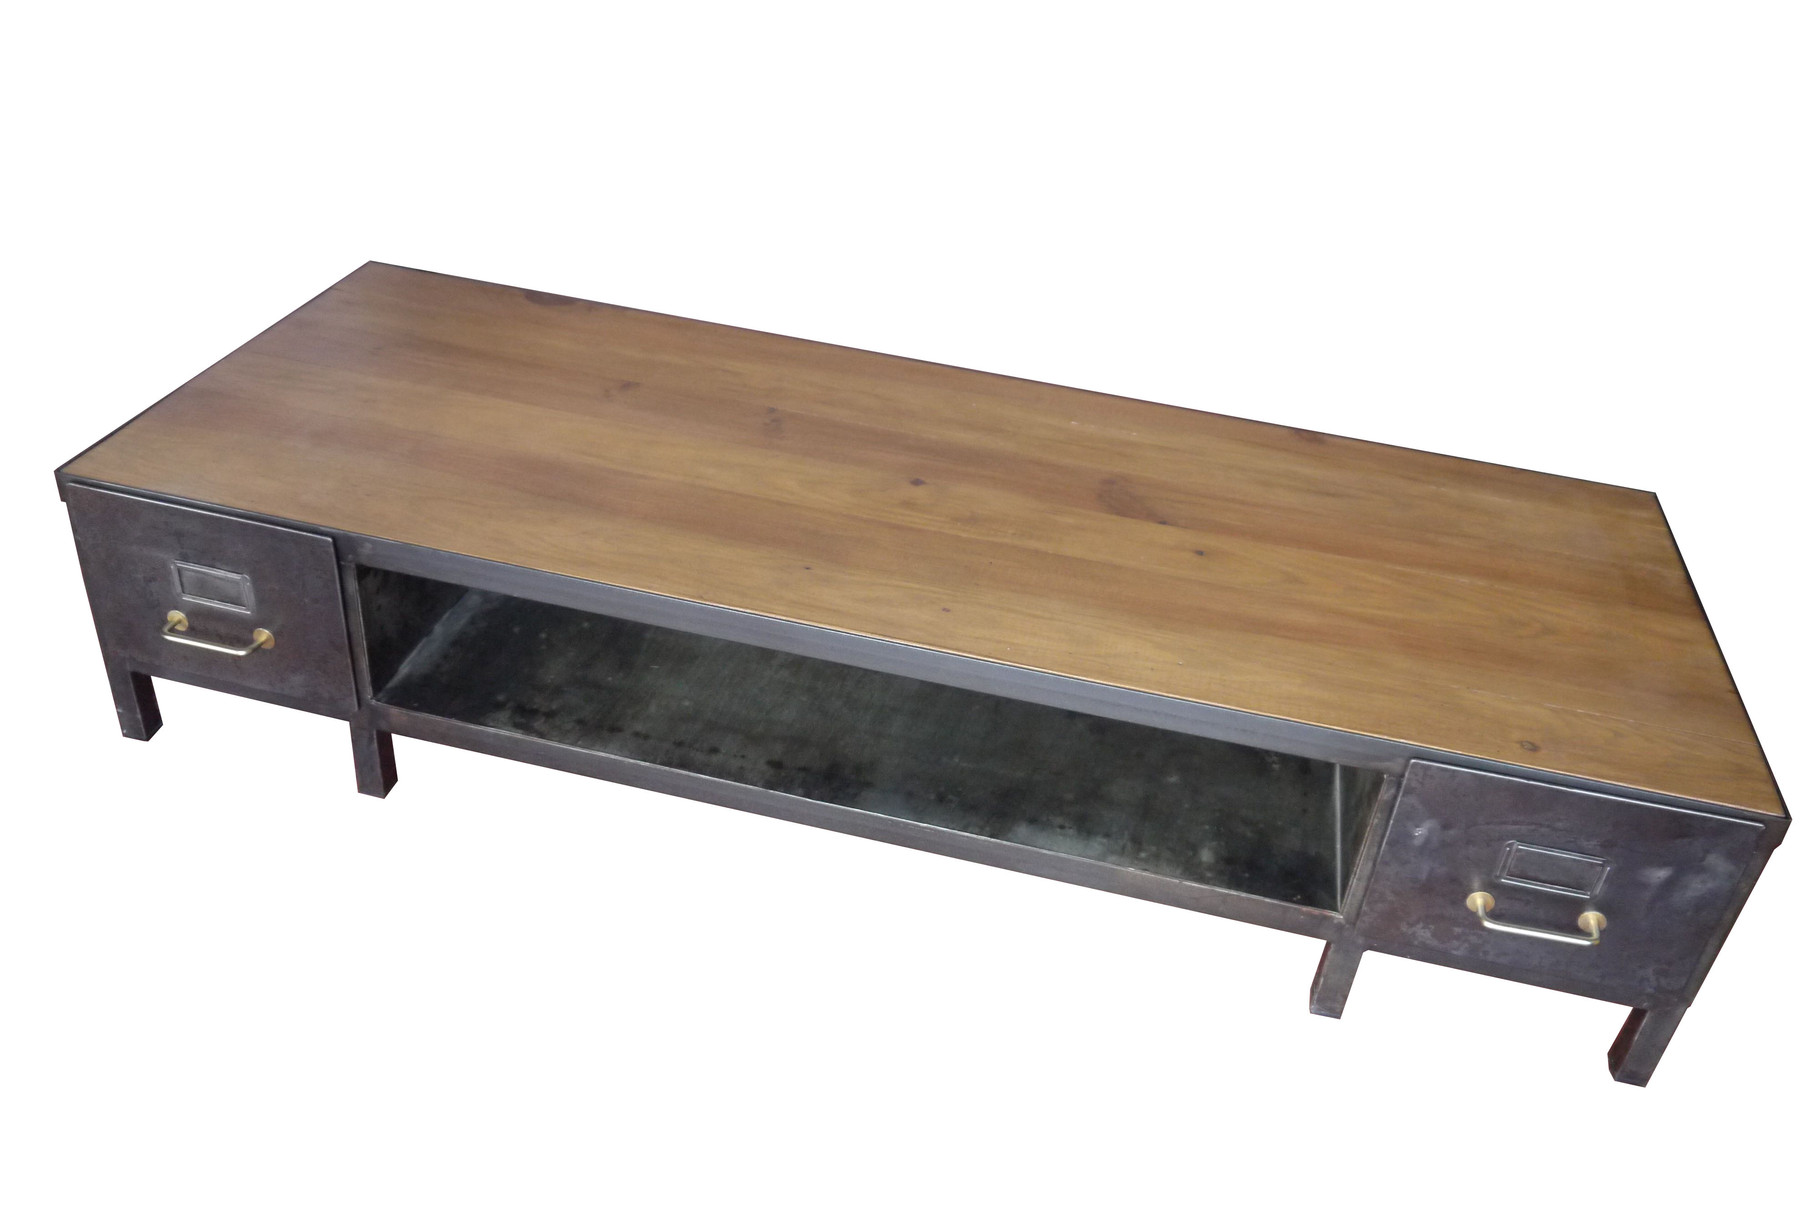 Table Basse Meuble Tv Industriel Atelier Vintage Mobilier  # Meuble De Tv Industriel